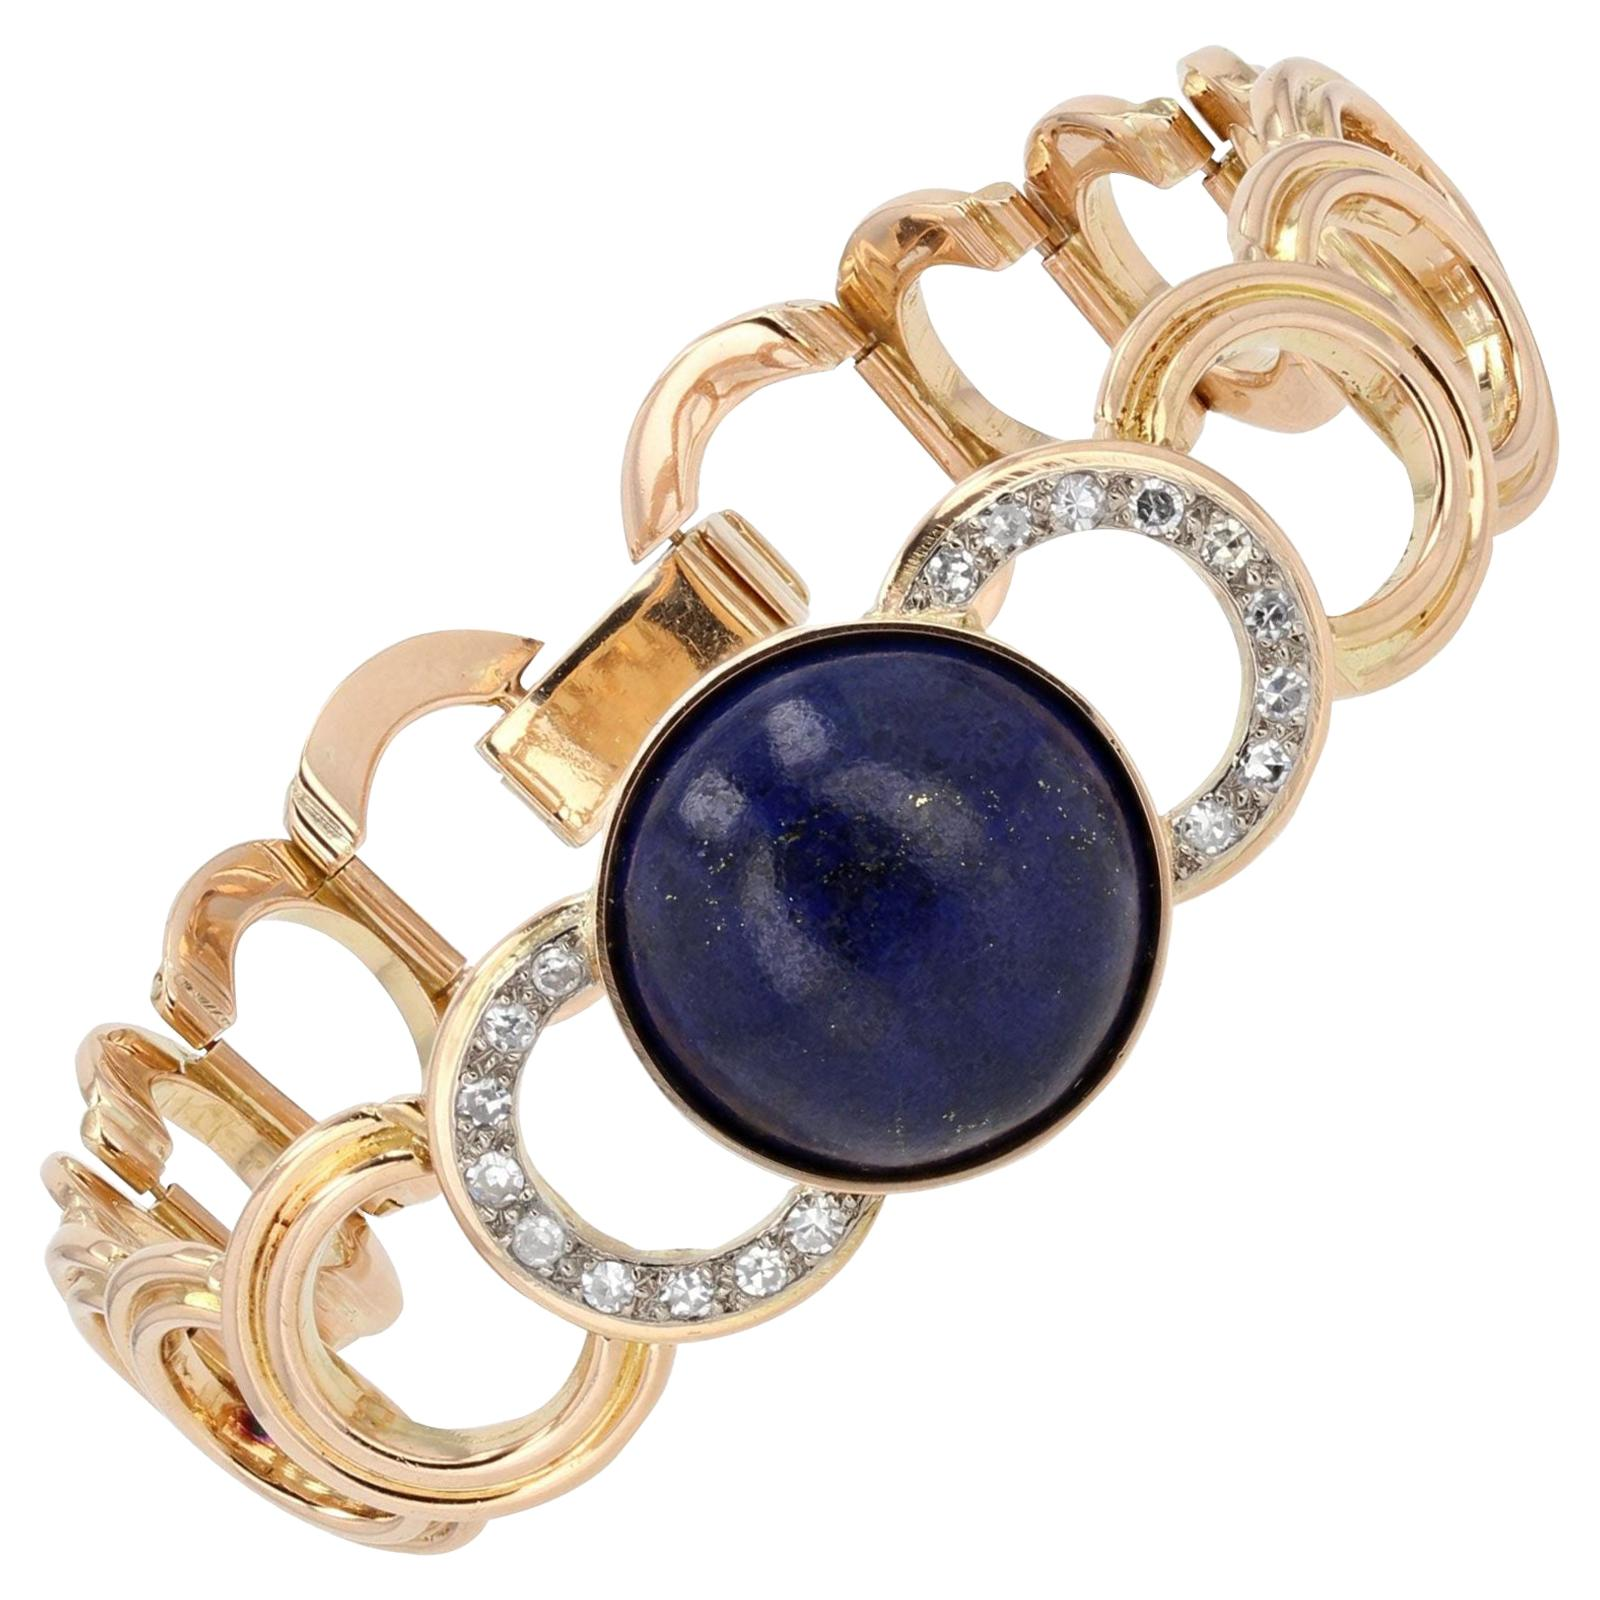 1950s Lapis Lazuli Cabochon Diamonds 18 Karat Yellow Gold Bracelet